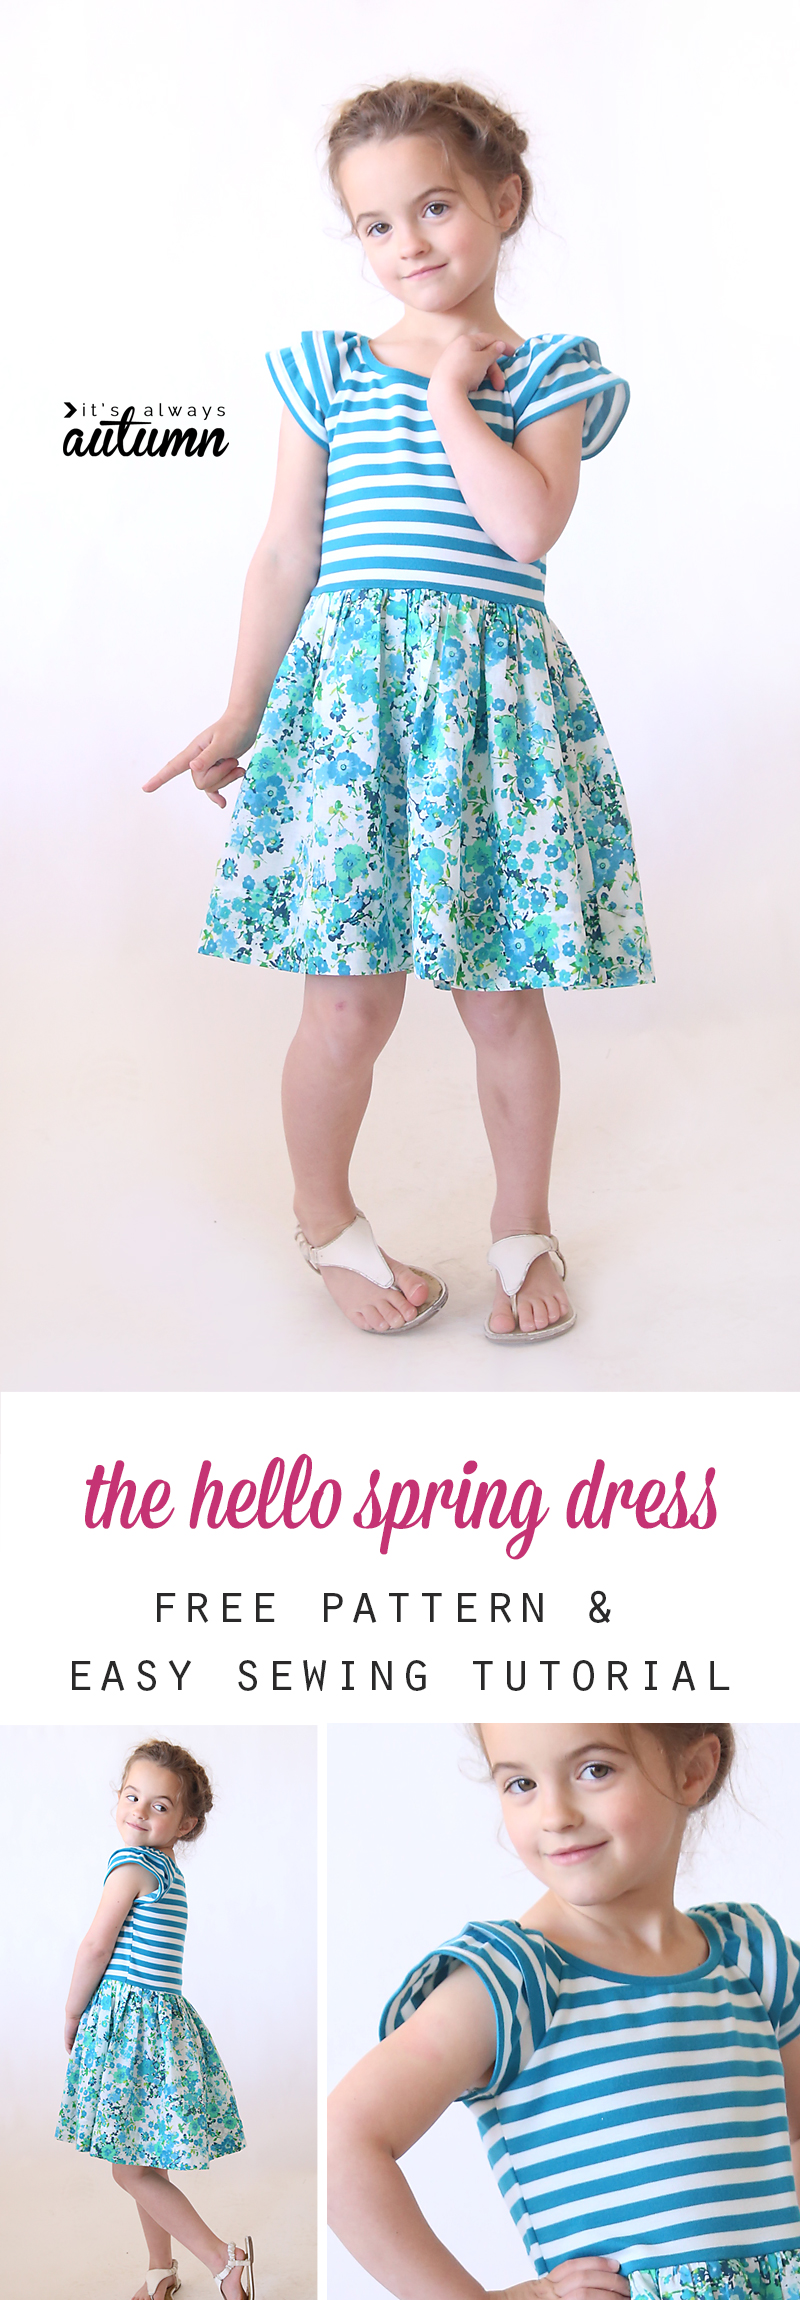 Image Result For How To Make A Dress Out Of Fabric Without Sewing